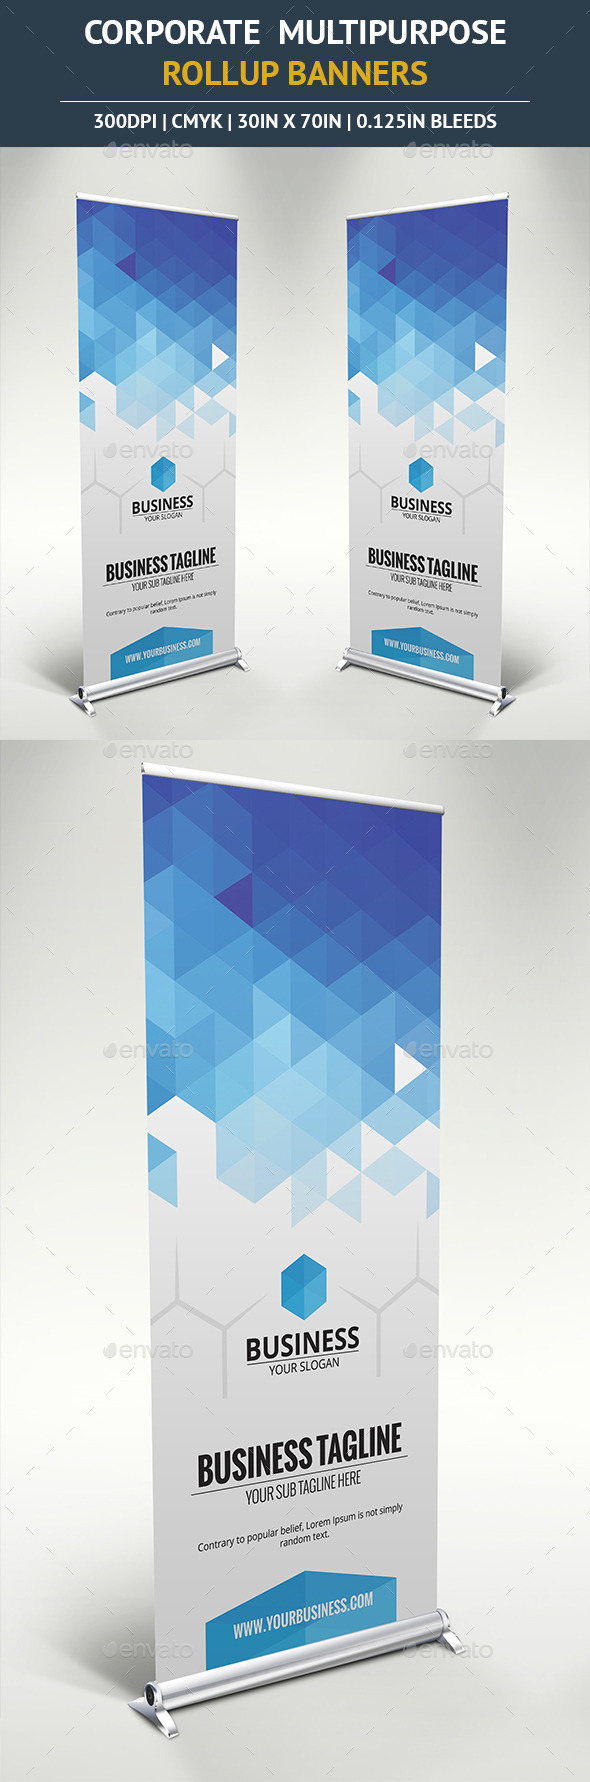 Corporate Rollup Banner vol7 - Signage Print Templates